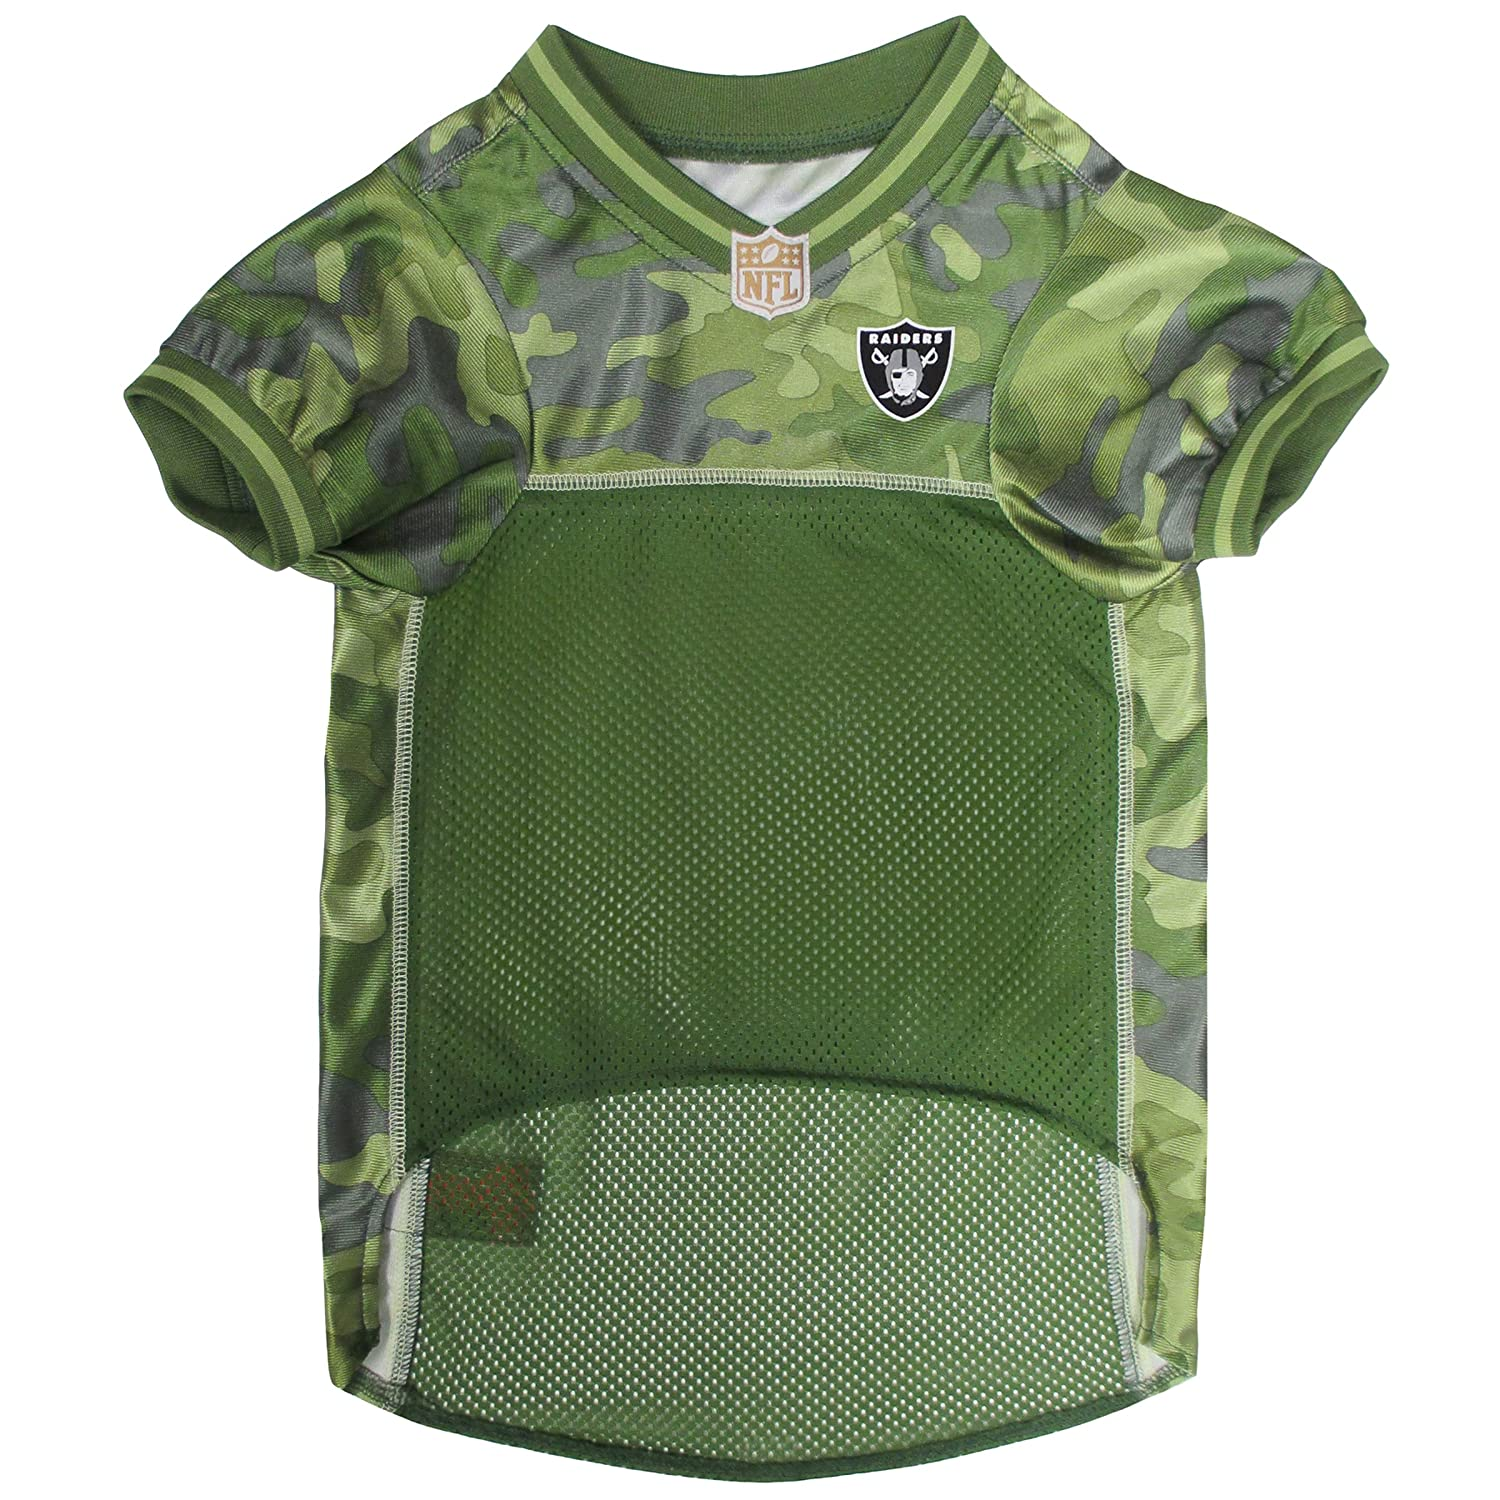 1705bdc72 Football Dog Jersey Camouflage Available in 32 NFL Teams & 5 Sizes. Cuttest  Hunting Dog Dress! Camouflage Pet Jersey with Team Logo.